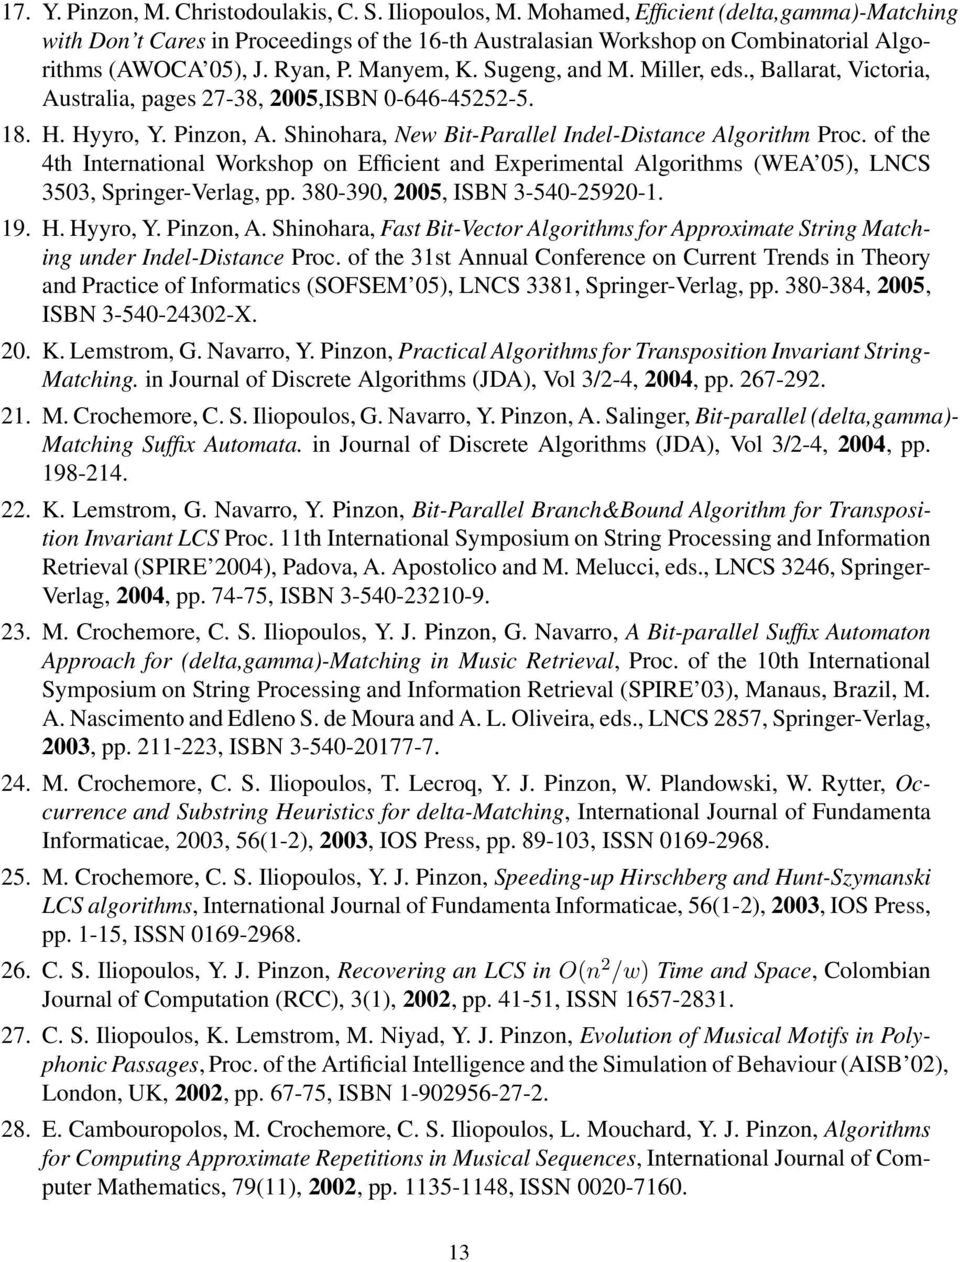 , Ballarat, Victoria, Australia, pages 27-38, 2005,ISBN 0-646-45252-5. 18. H. Hyyro, Y. Pinzon, A. Shinohara, New Bit-Parallel Indel-Distance Algorithm Proc.